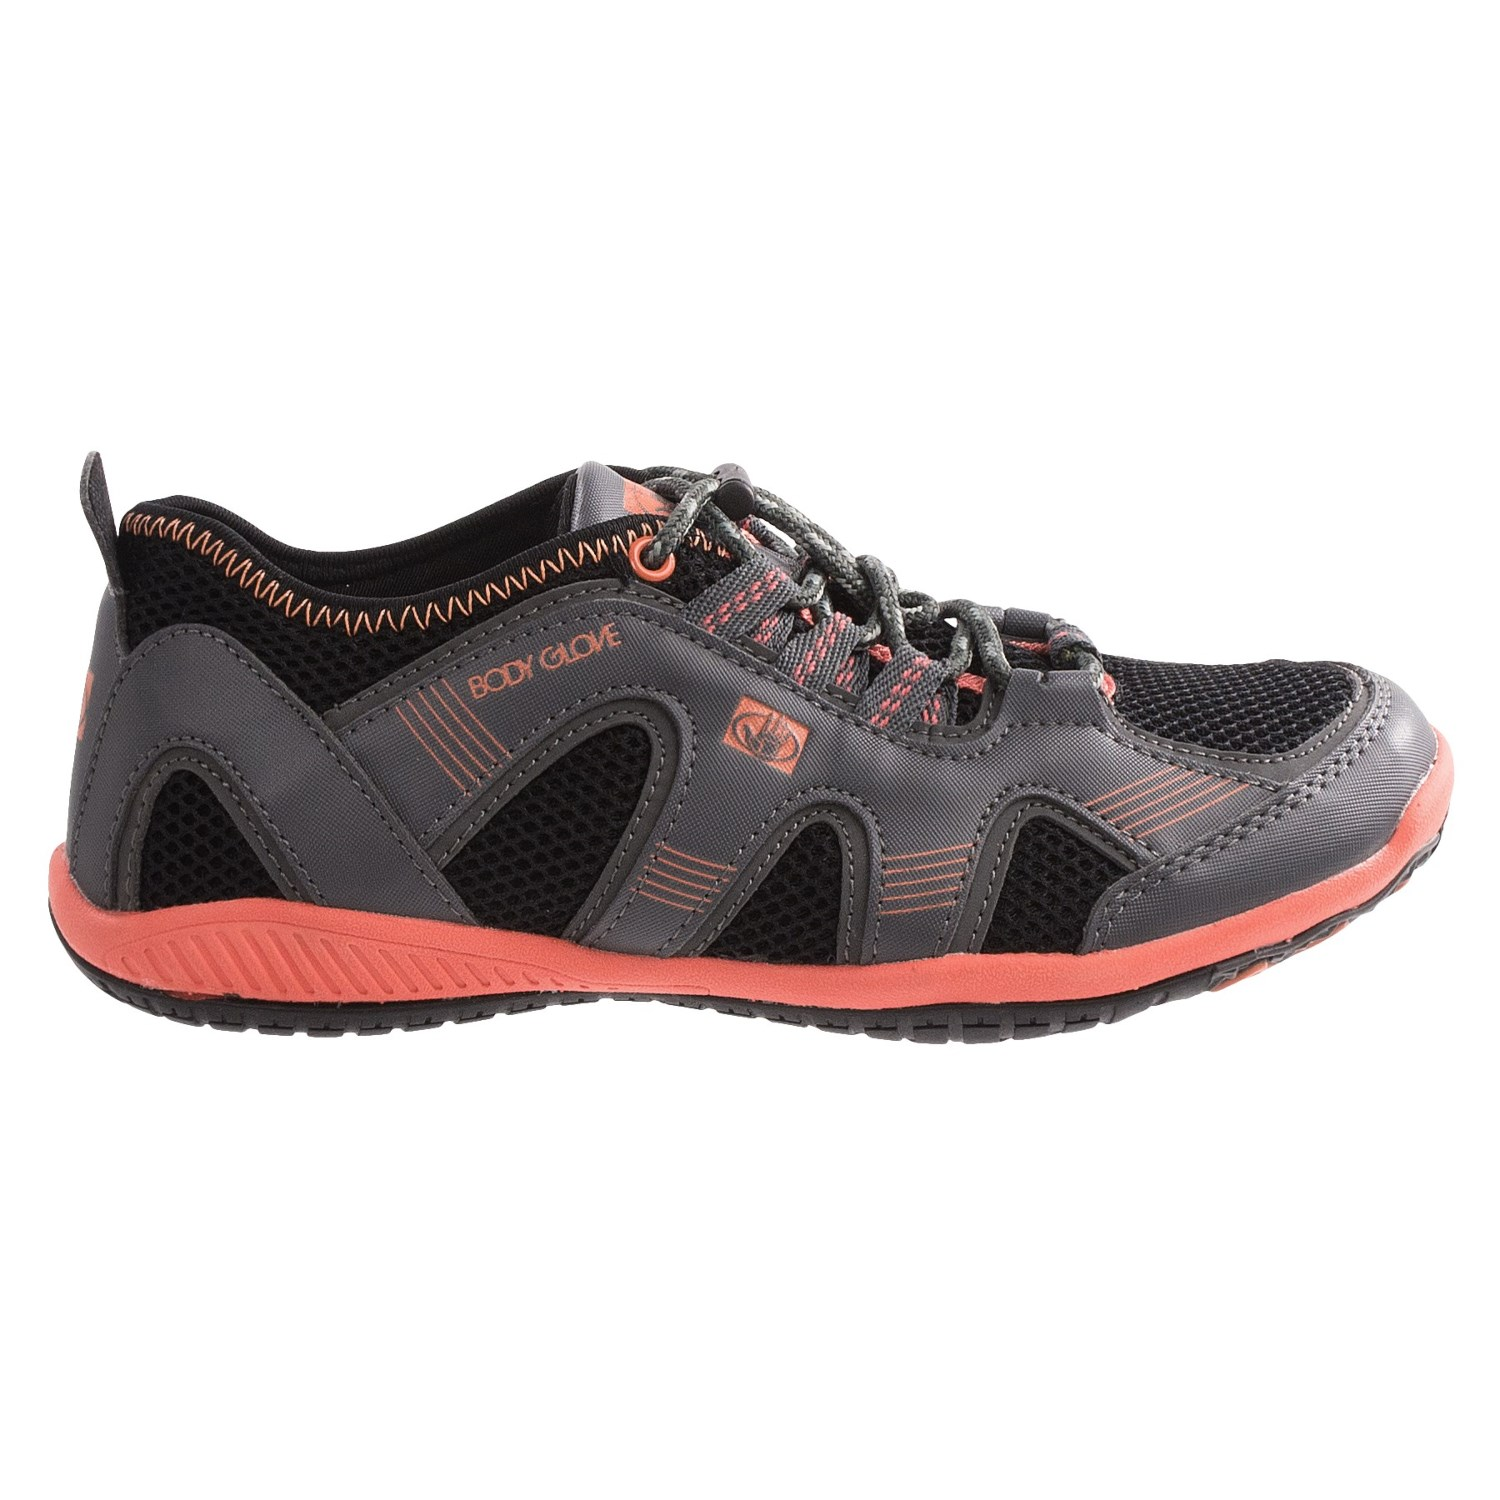 Body Glove Dynamo Water Shoes (For Women) - Save 50%